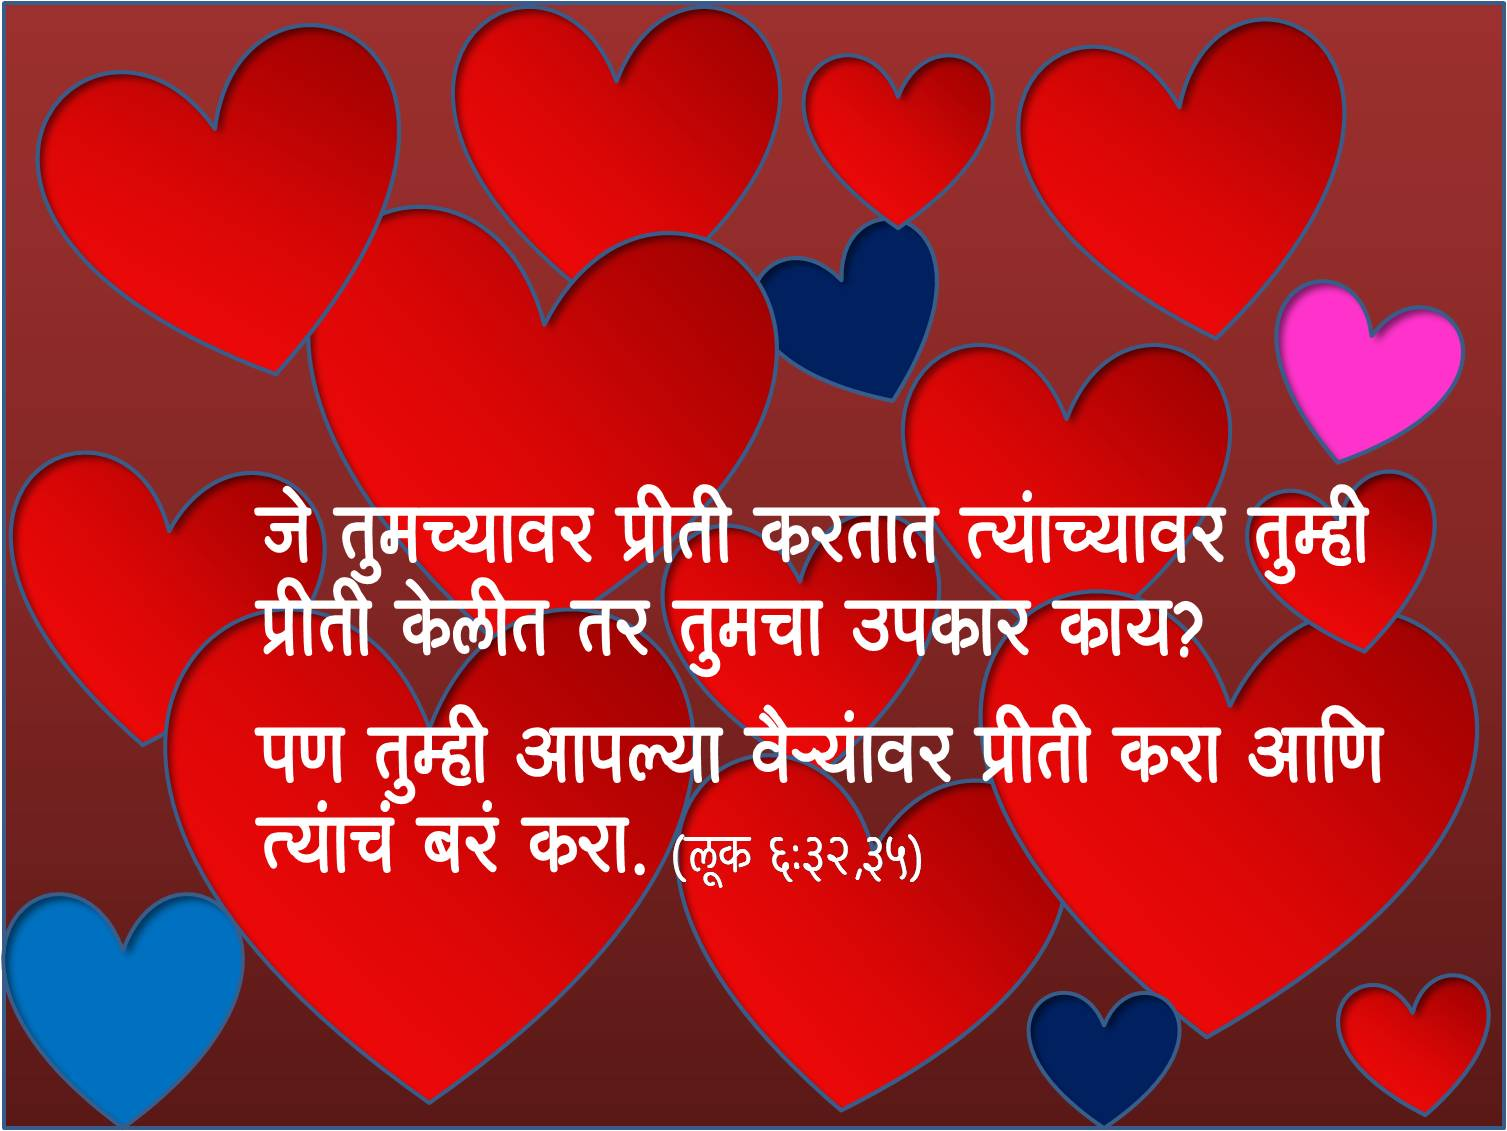 ... More marathi bible wallpapers for 2012 valentine s day nava karar